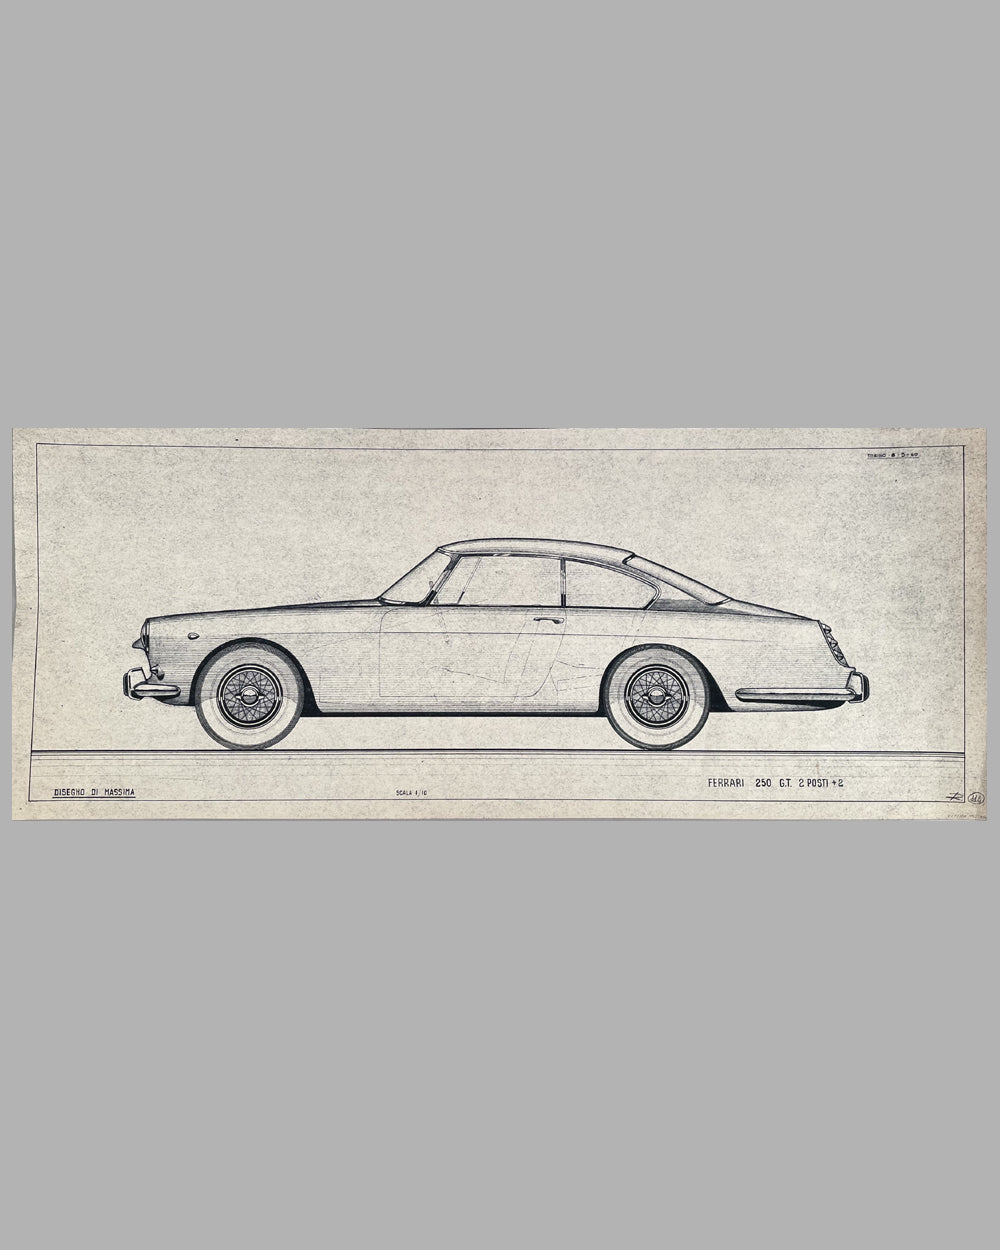 Ferrari 250 GT 2+2 original working blueprint, 1960, by the Pininfarina Studio